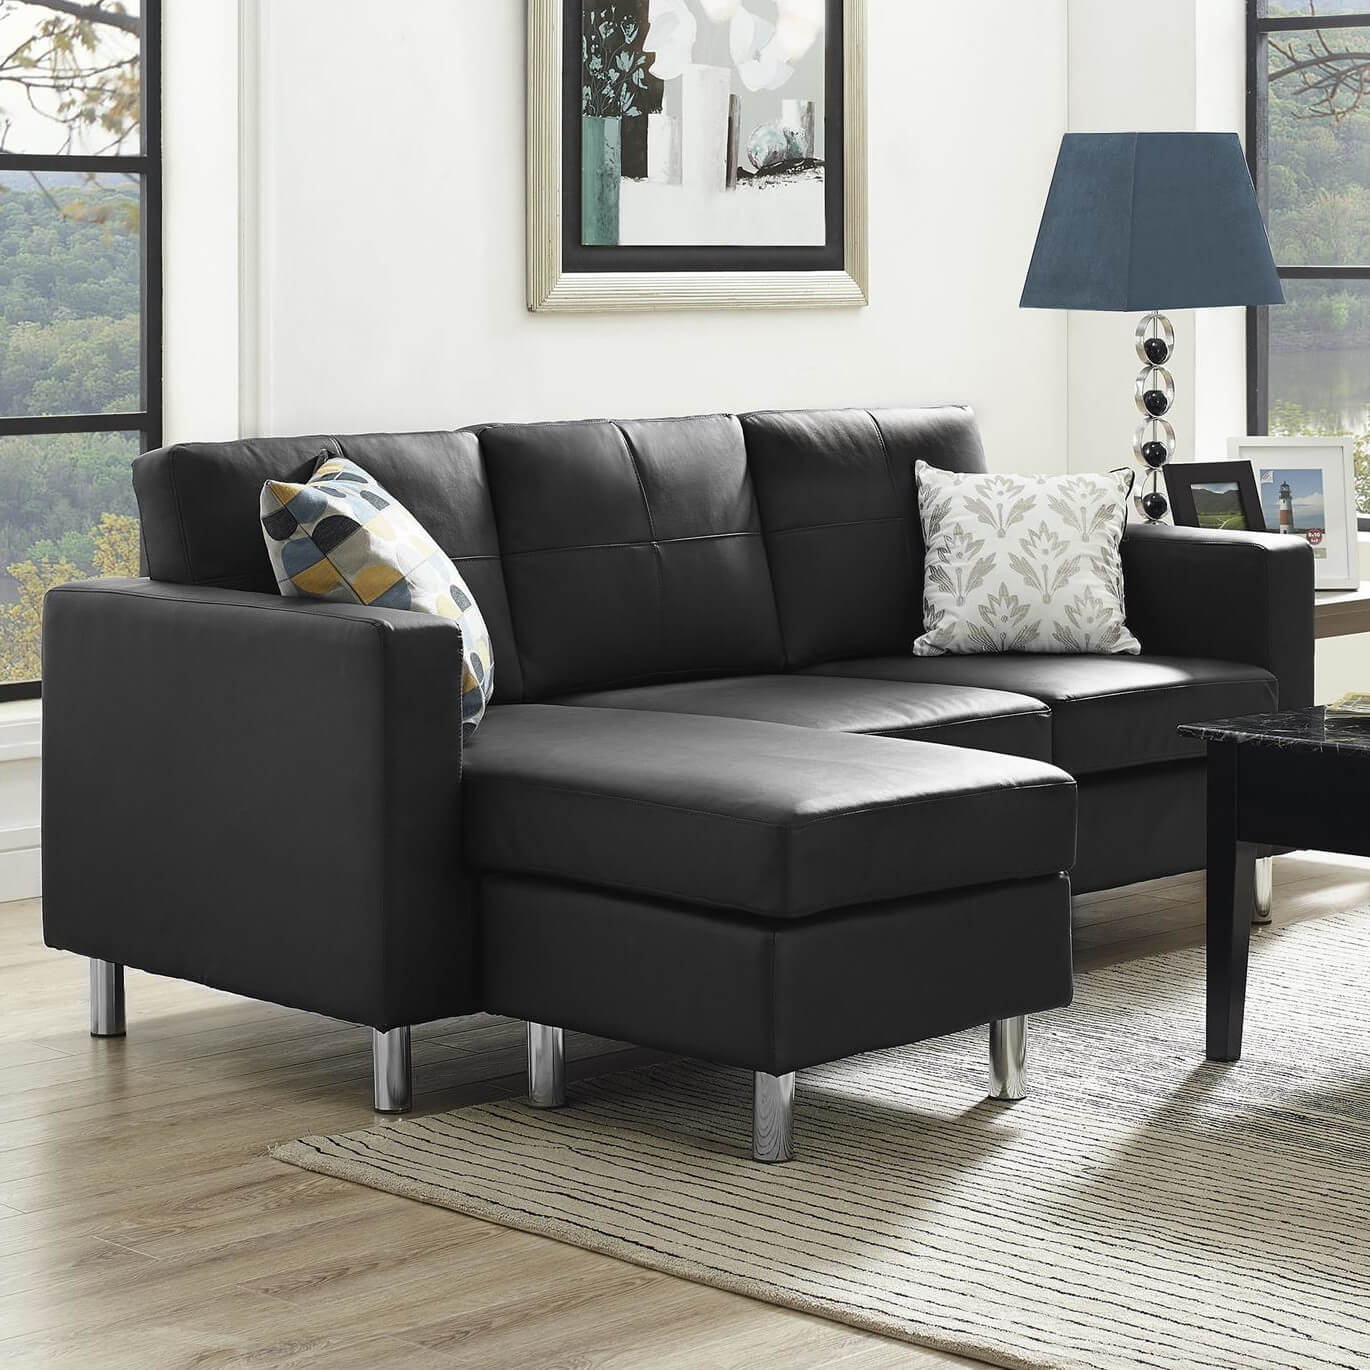 40 cheap sectional sofas under 500 for 2018 for Small spaces sectional sofa black faux leather